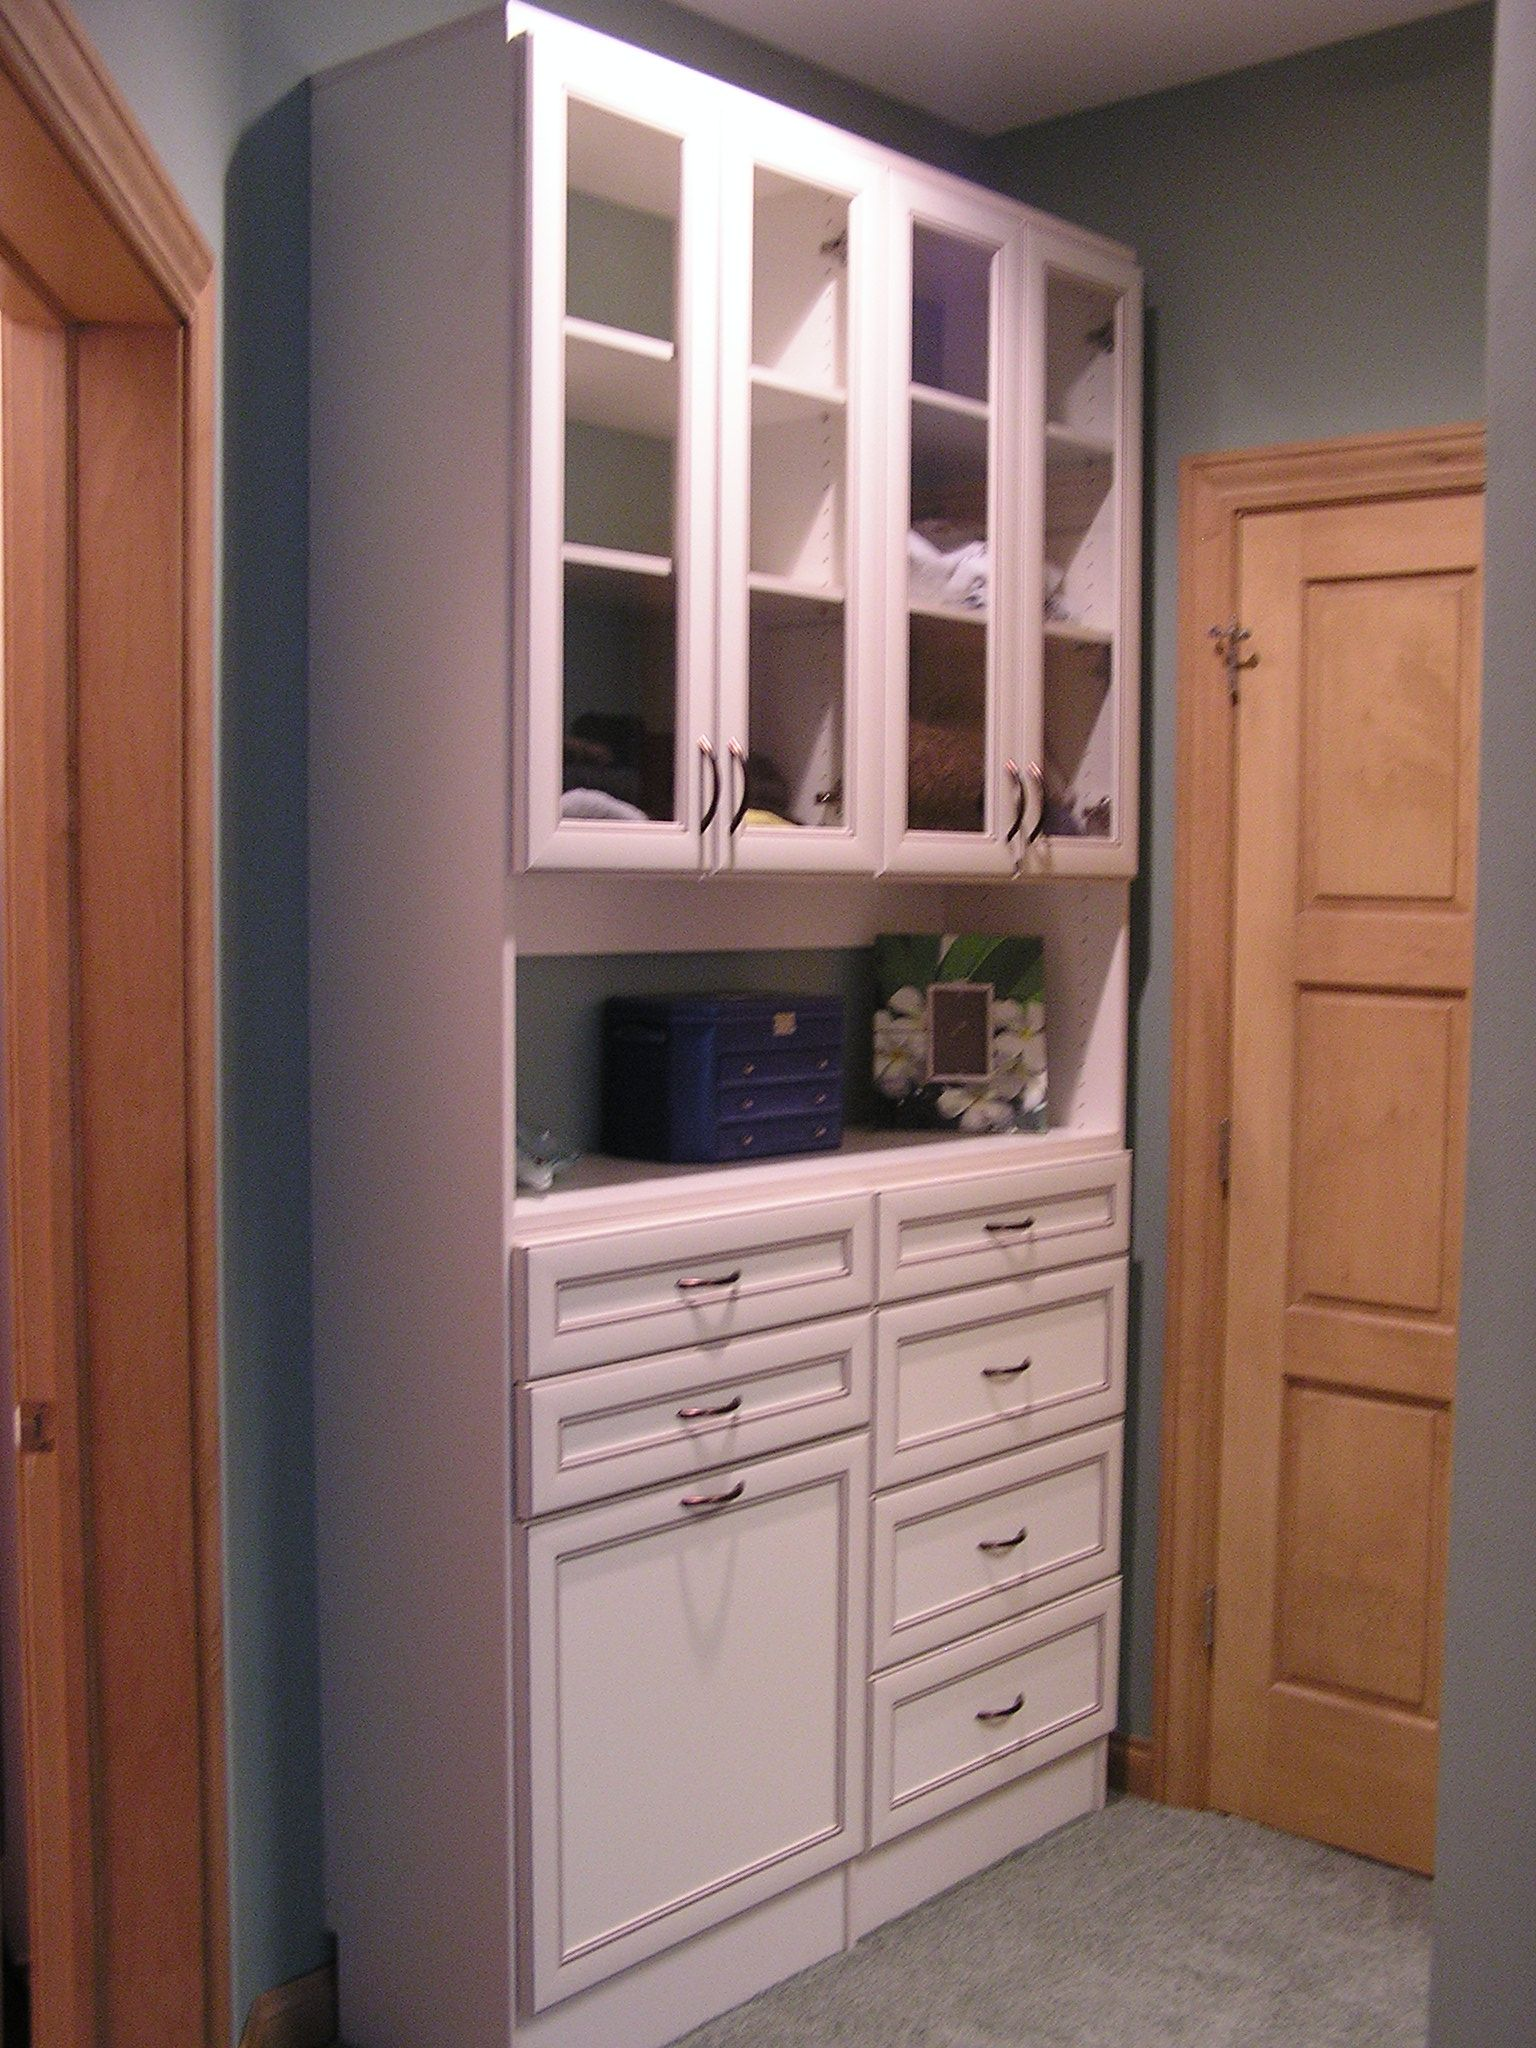 Master Closet With Hutch. The Hutch Includes Glass Doors, Laundry Hamper,  Drawers, And Space For Jewelry.